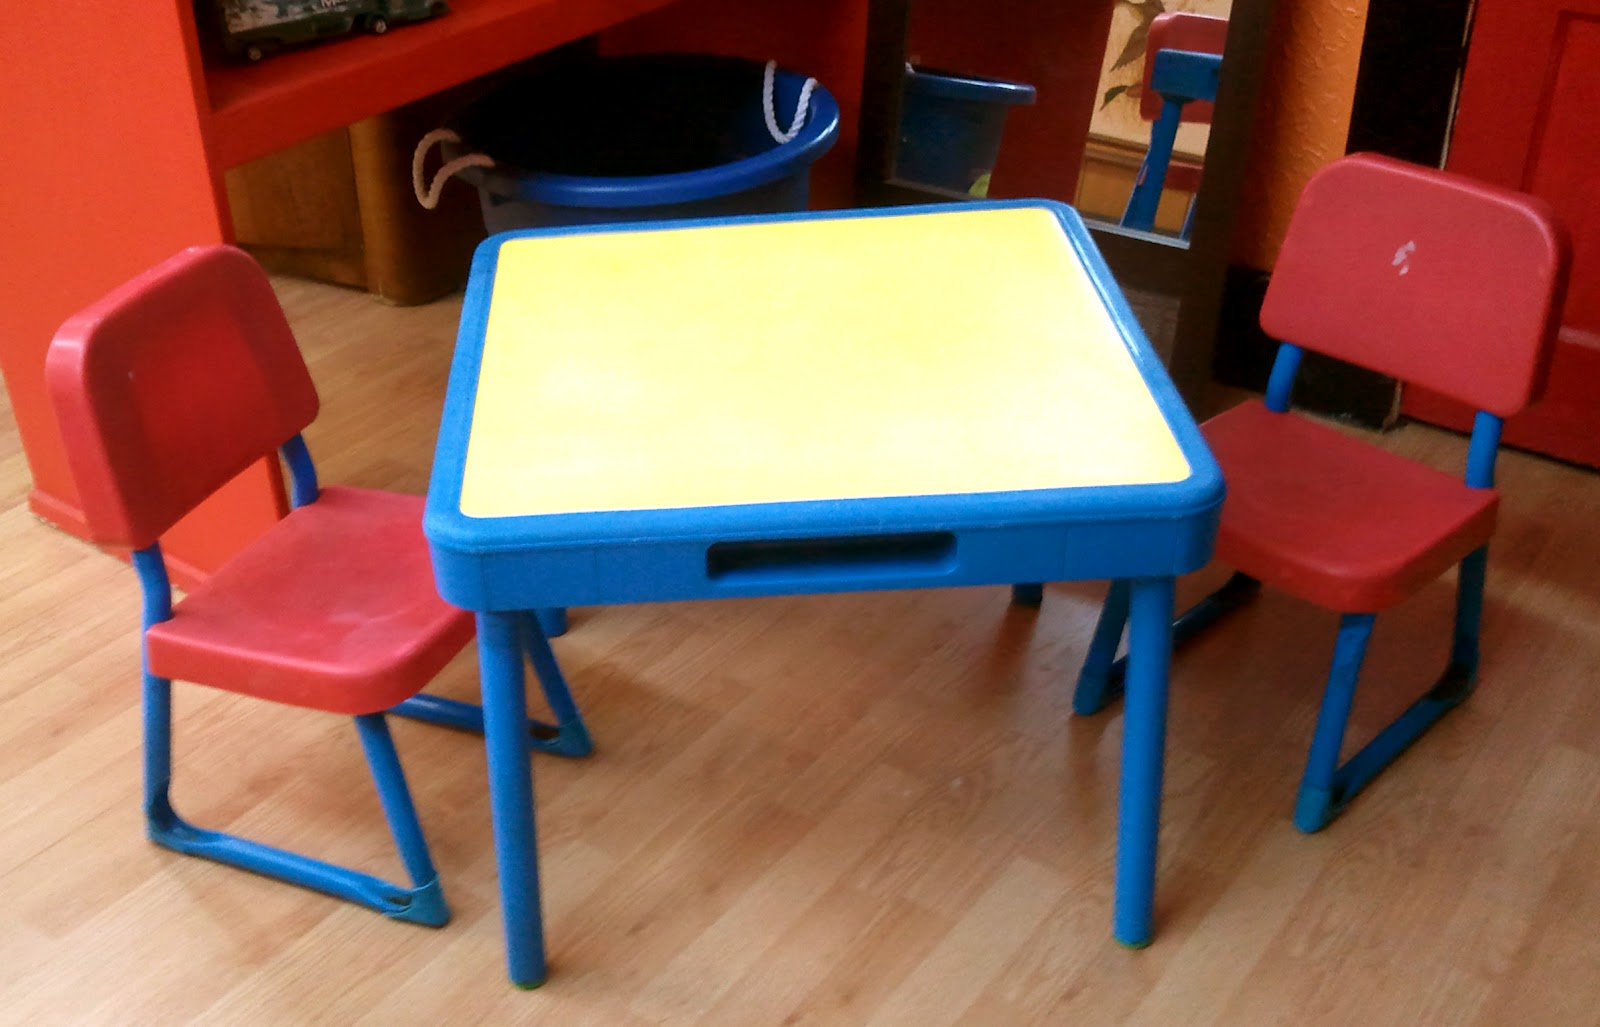 Fabulous Fisher-Price Kids Table and Chairs 1600 x 1027 · 155 kB · jpeg